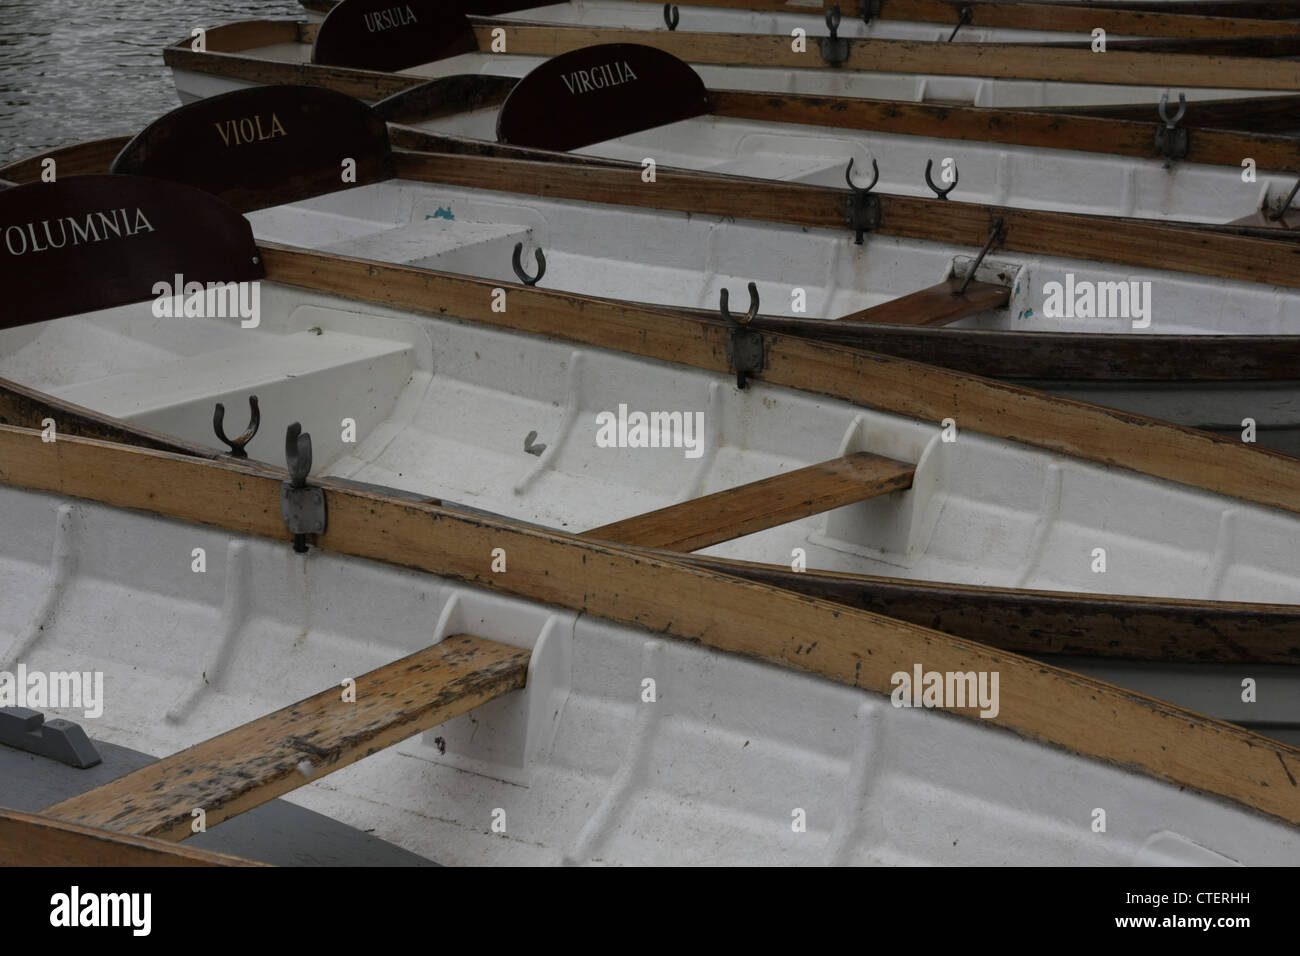 Cluster of Rowing Boats - Stock Image